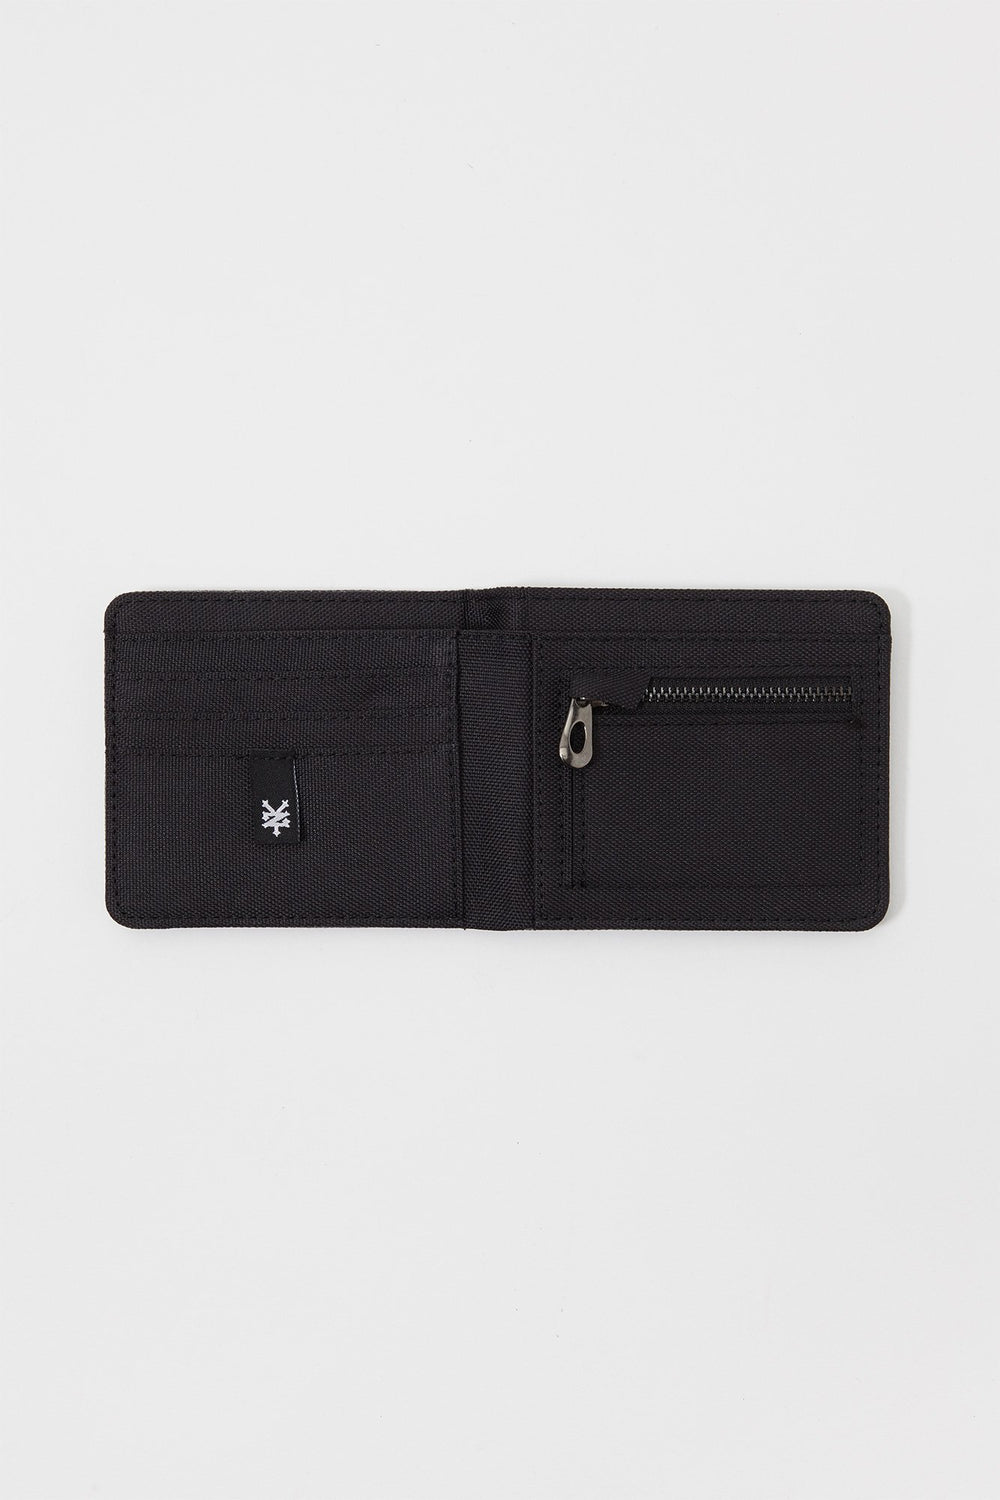 Zoo York Single Fold Canvas Wallet Black